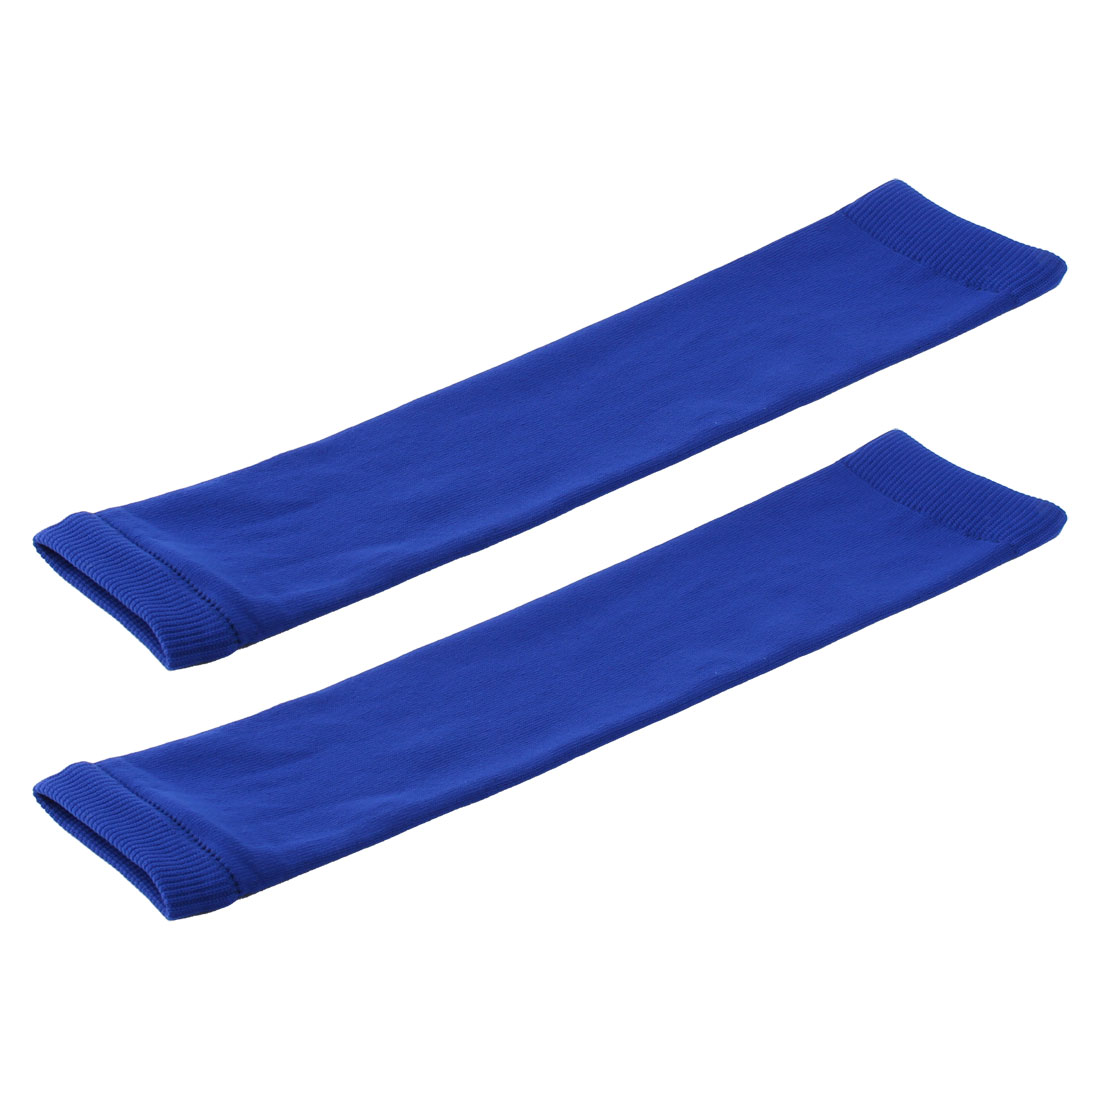 Sports Exercise Running Cotton Blends Muscle Arm Support Guard Blue Pair